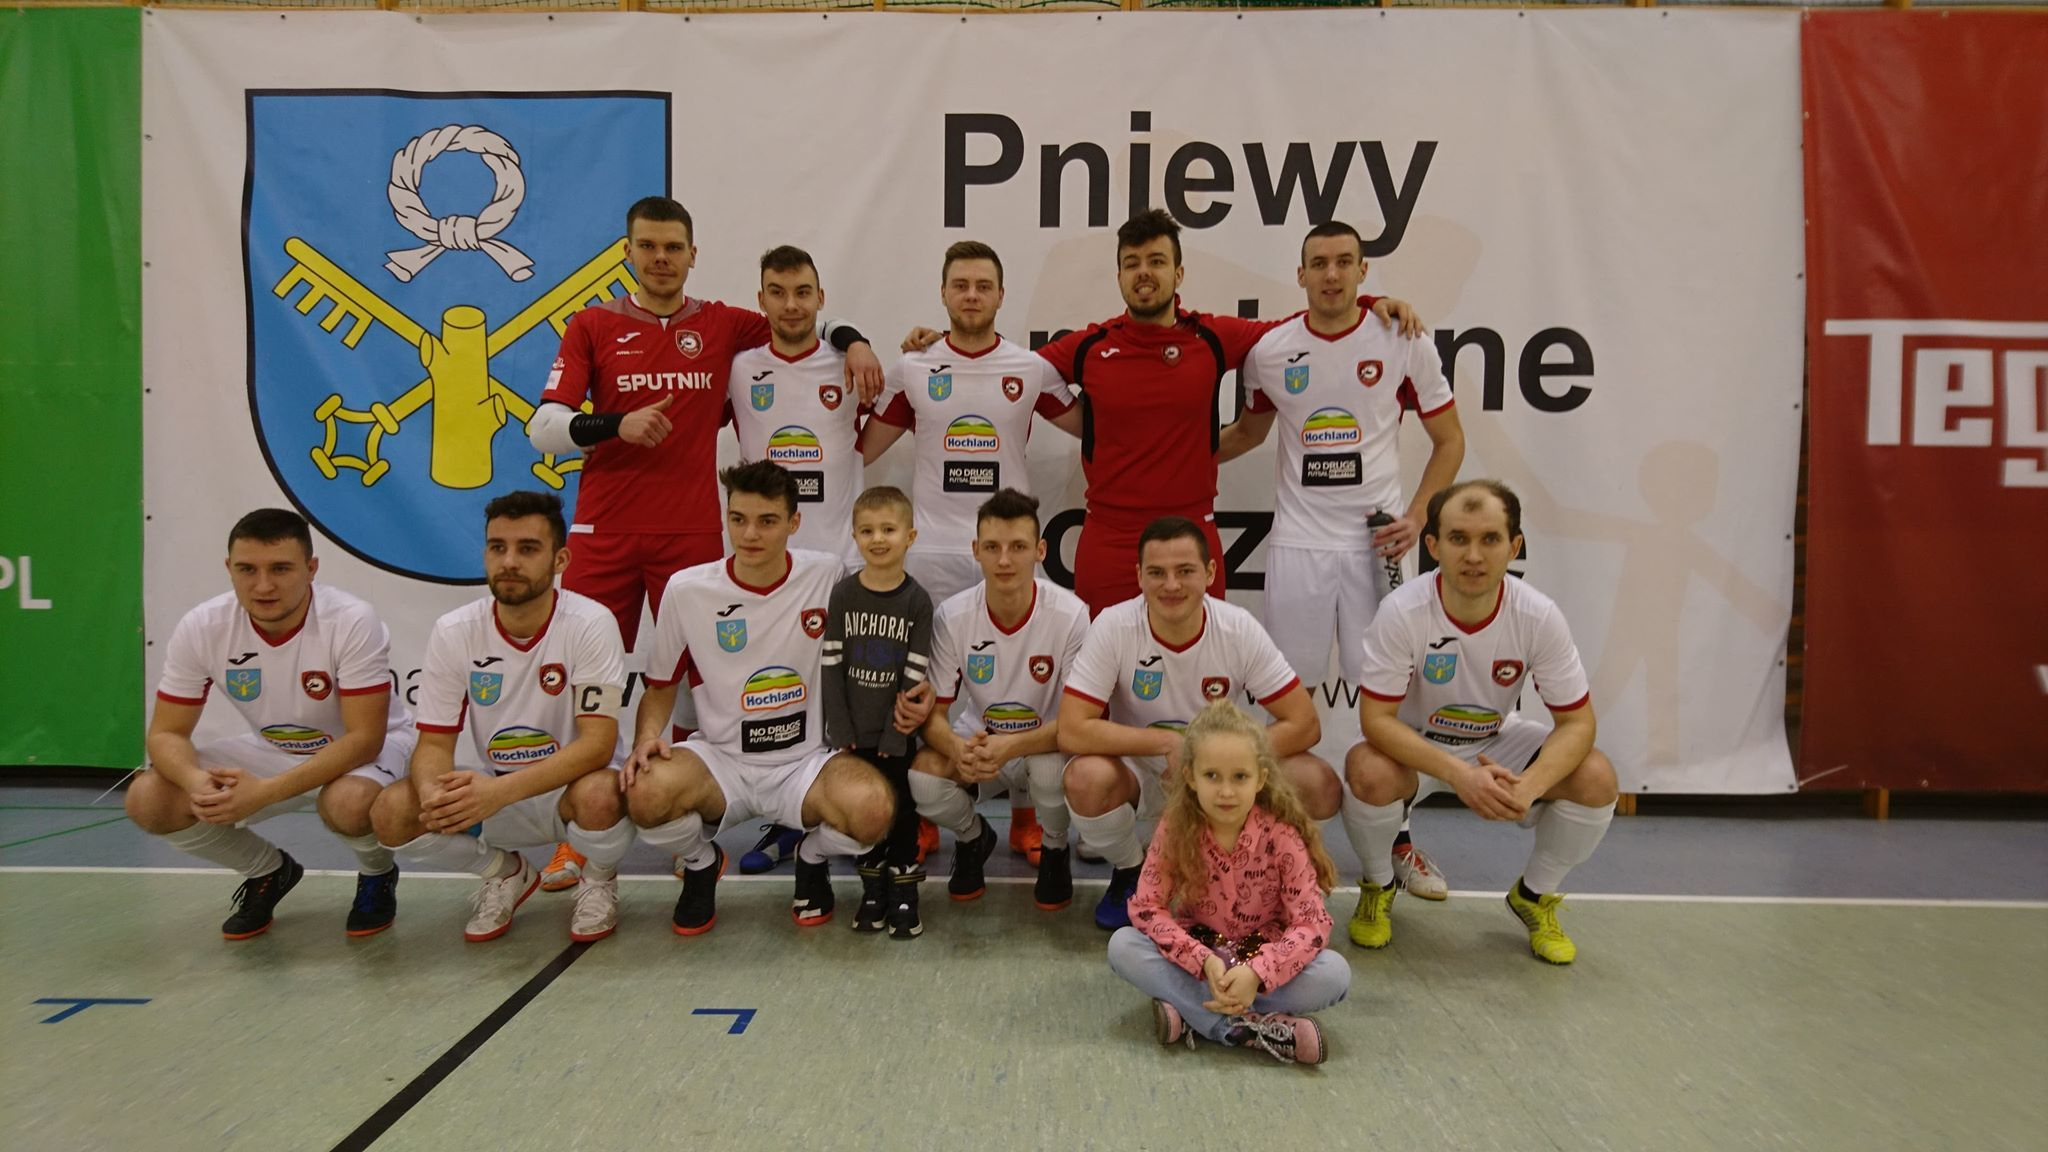 RED DRAGONS PNIEWY – WNS MALWEE ŁÓDŹ 5-1 (2-0)